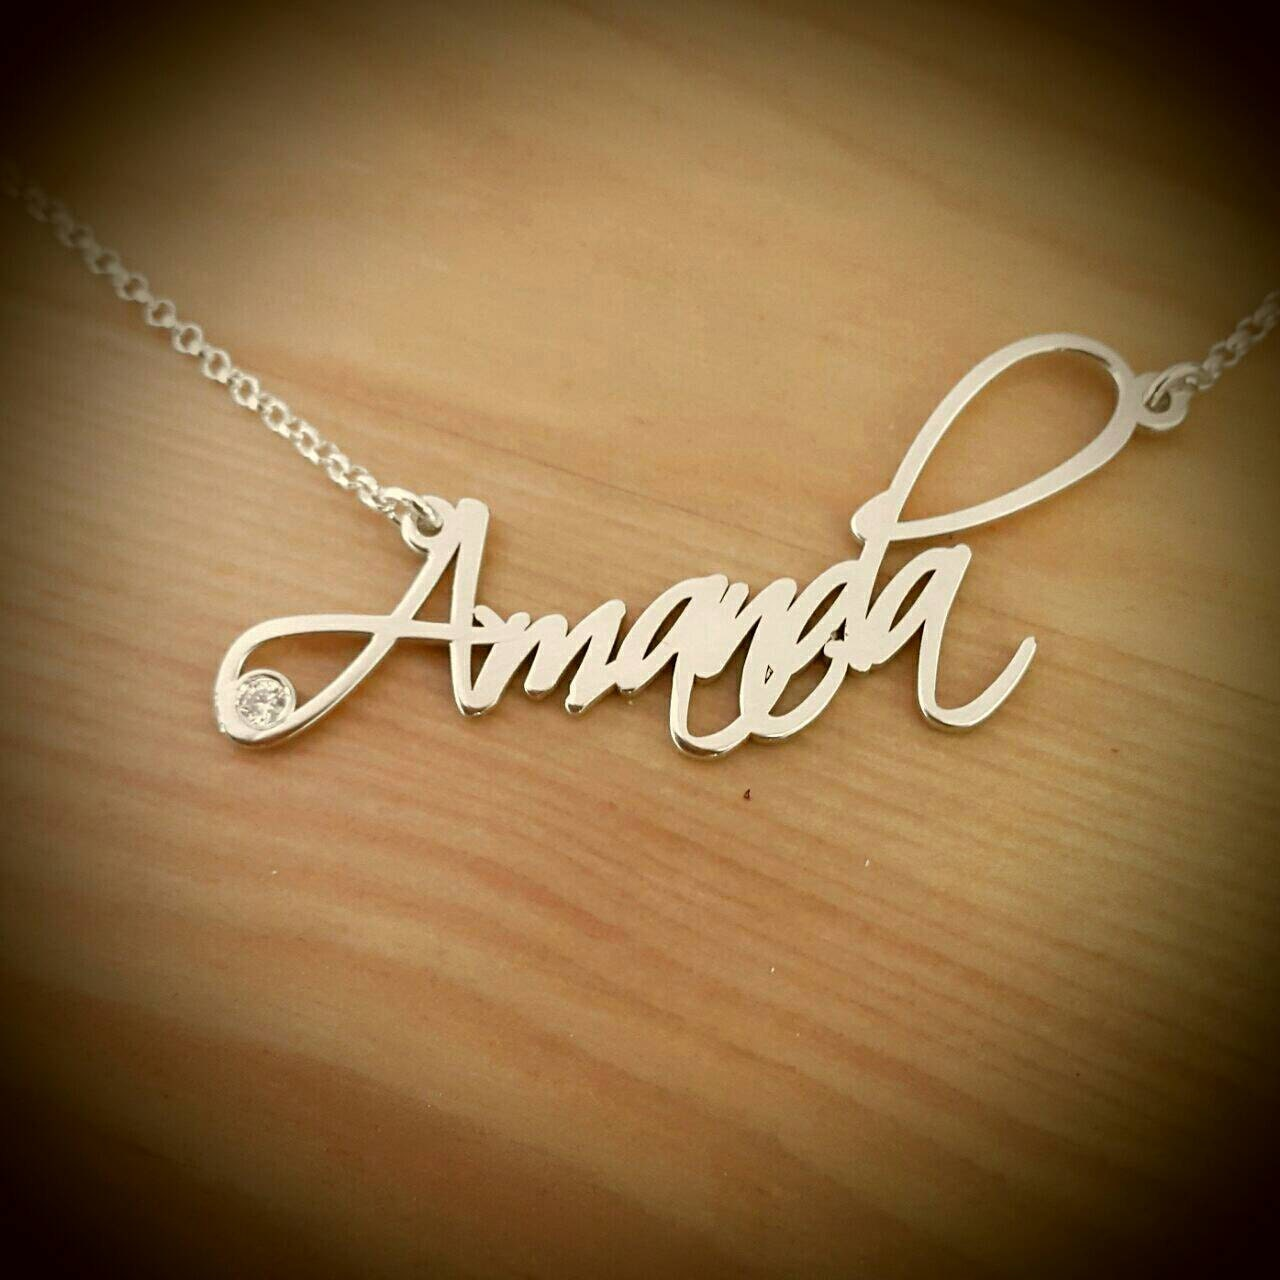 best bar arabic gold miracle idea name personalised uk australia chains solid valuable necklace nameplate